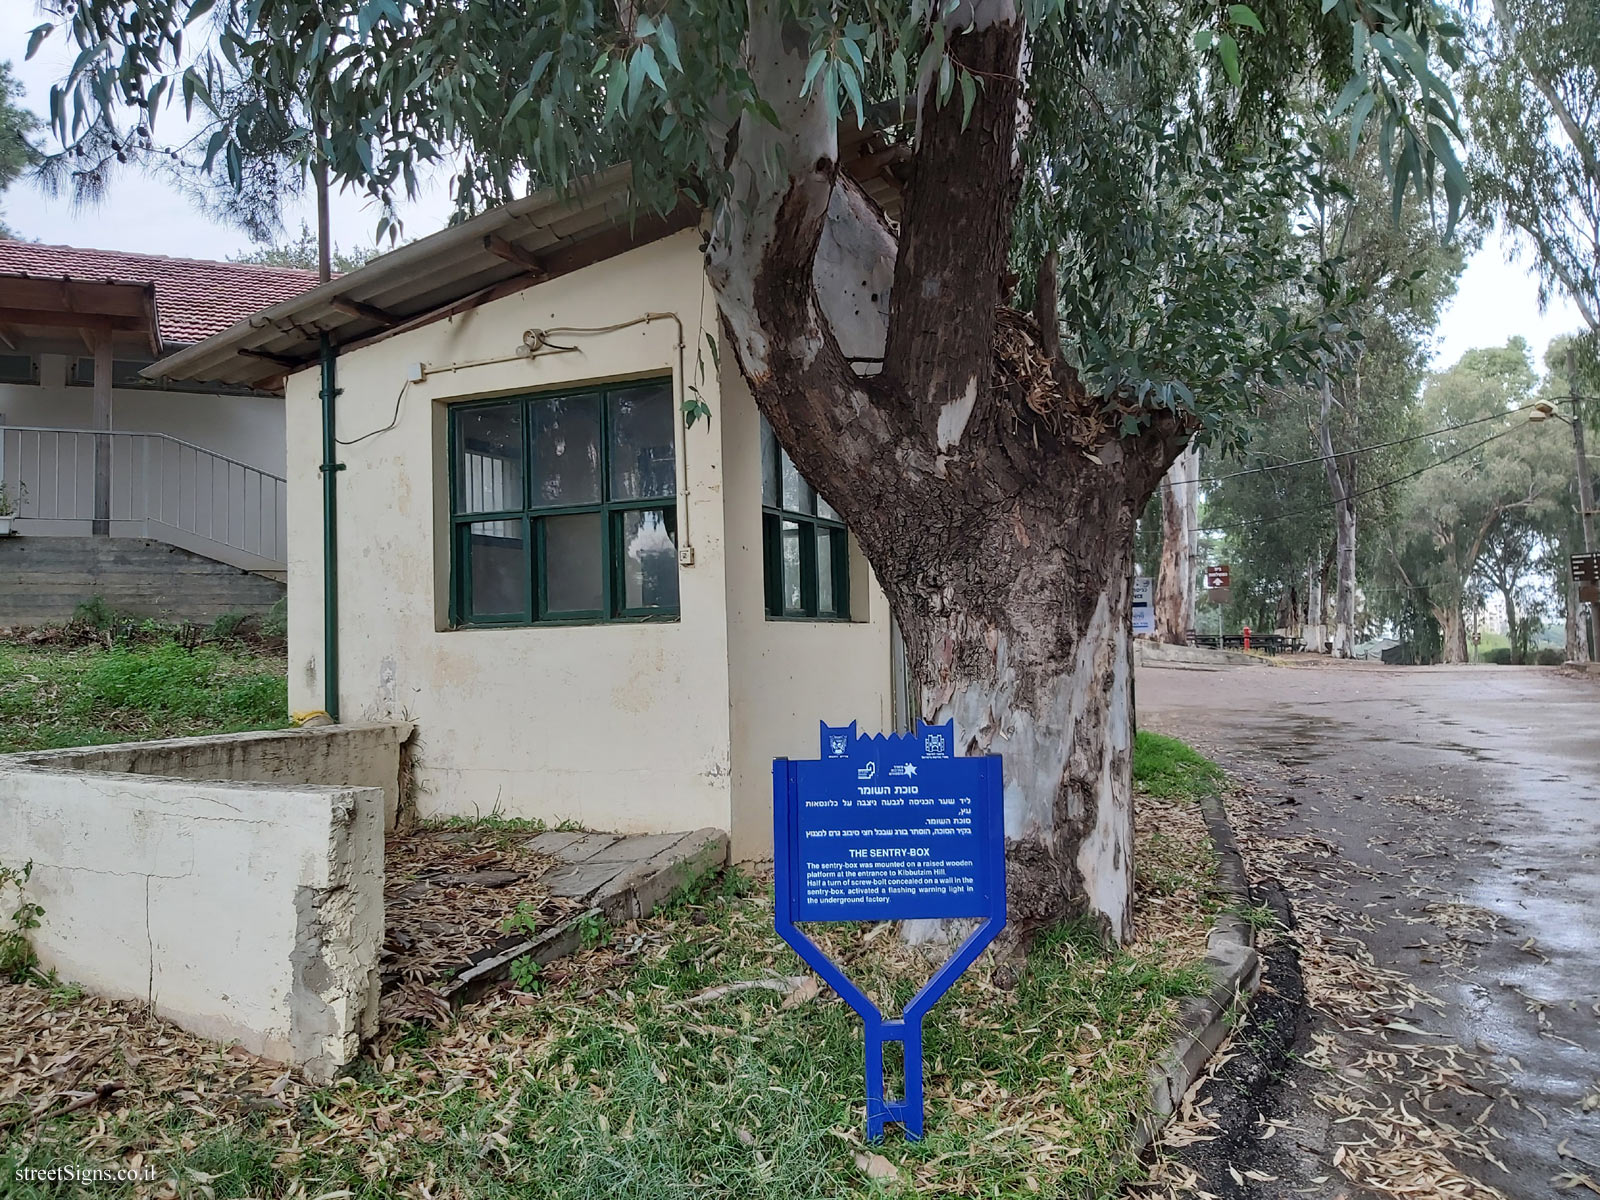 Rehovot - Heritage Sites in Israel - Ayalon Institute - The Sentry-box - David Fikes St 1, Rehovot, Israel